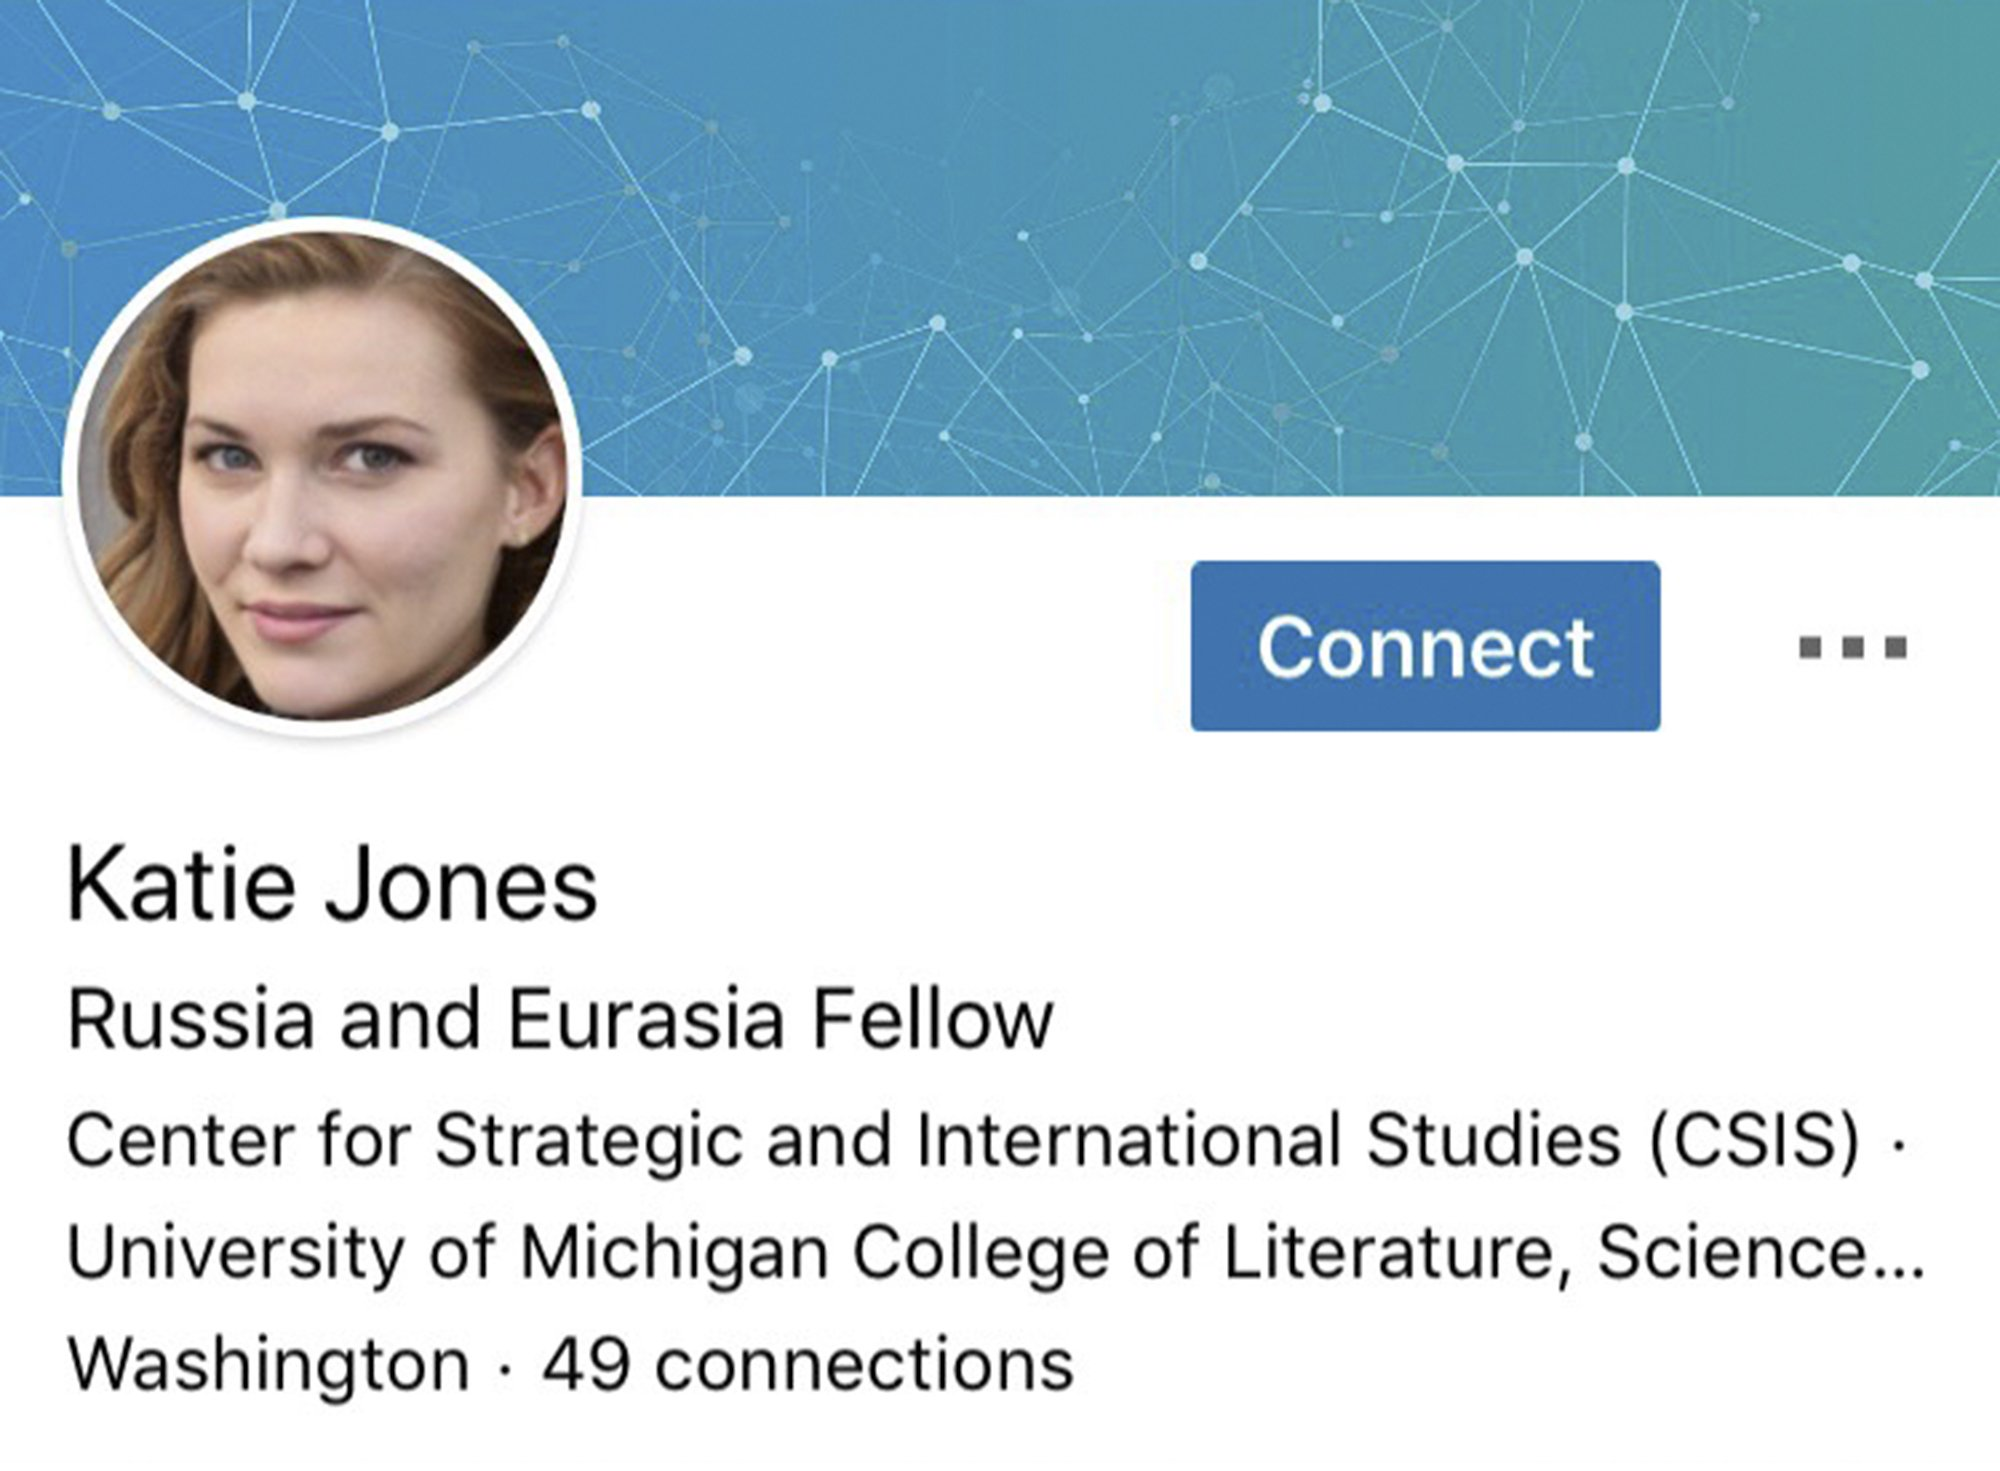 An image of a fake LinkedIn profile of the persona Katie Jones.